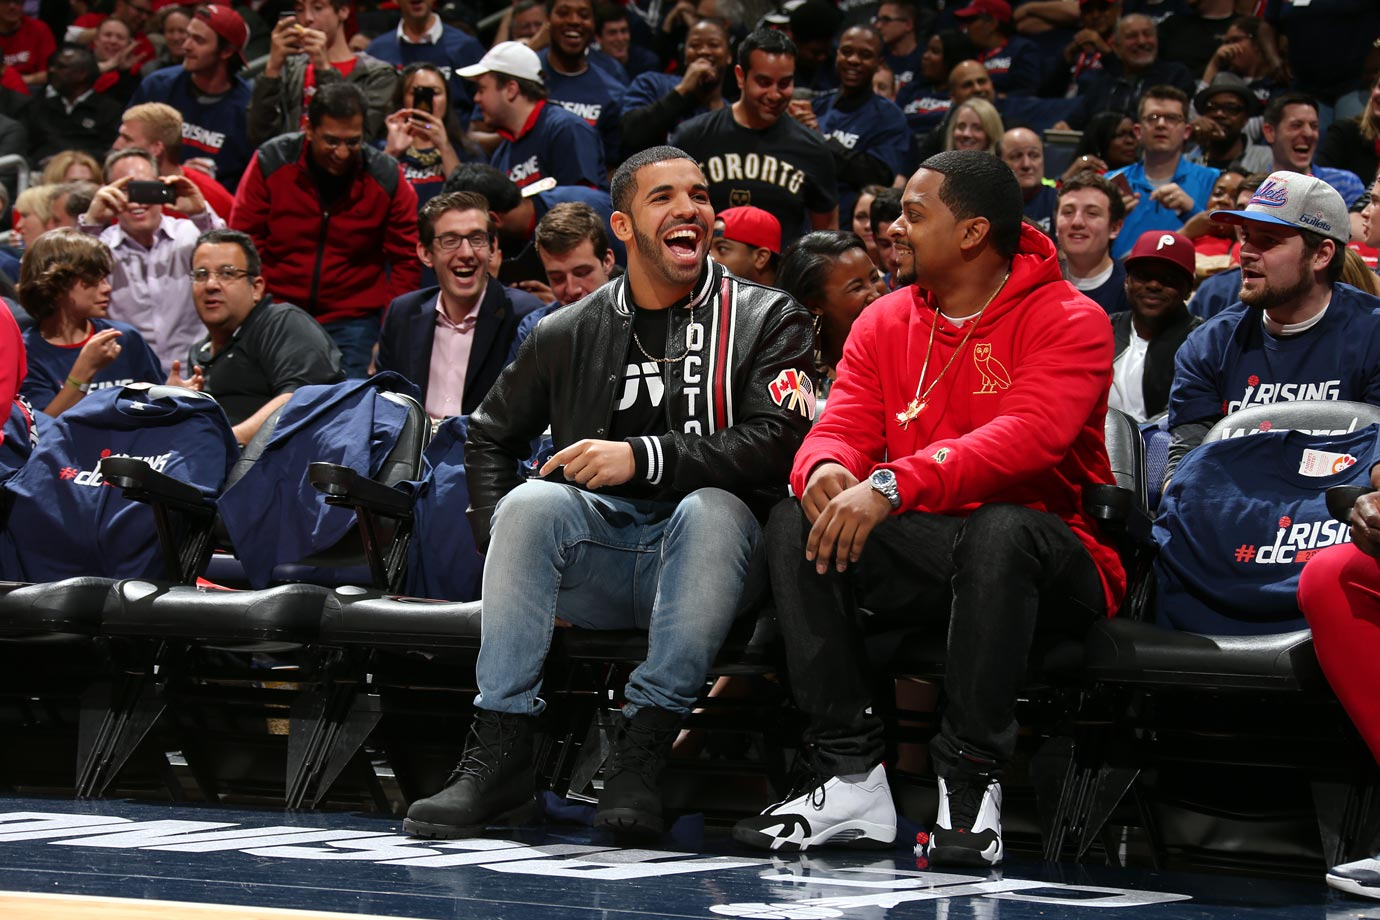 April 24, 2015: Washington Wizards vs. Toronto Raptors at Verizon Center in Washington, D.C. — Eastern Conference Quarterfinals, Game 3